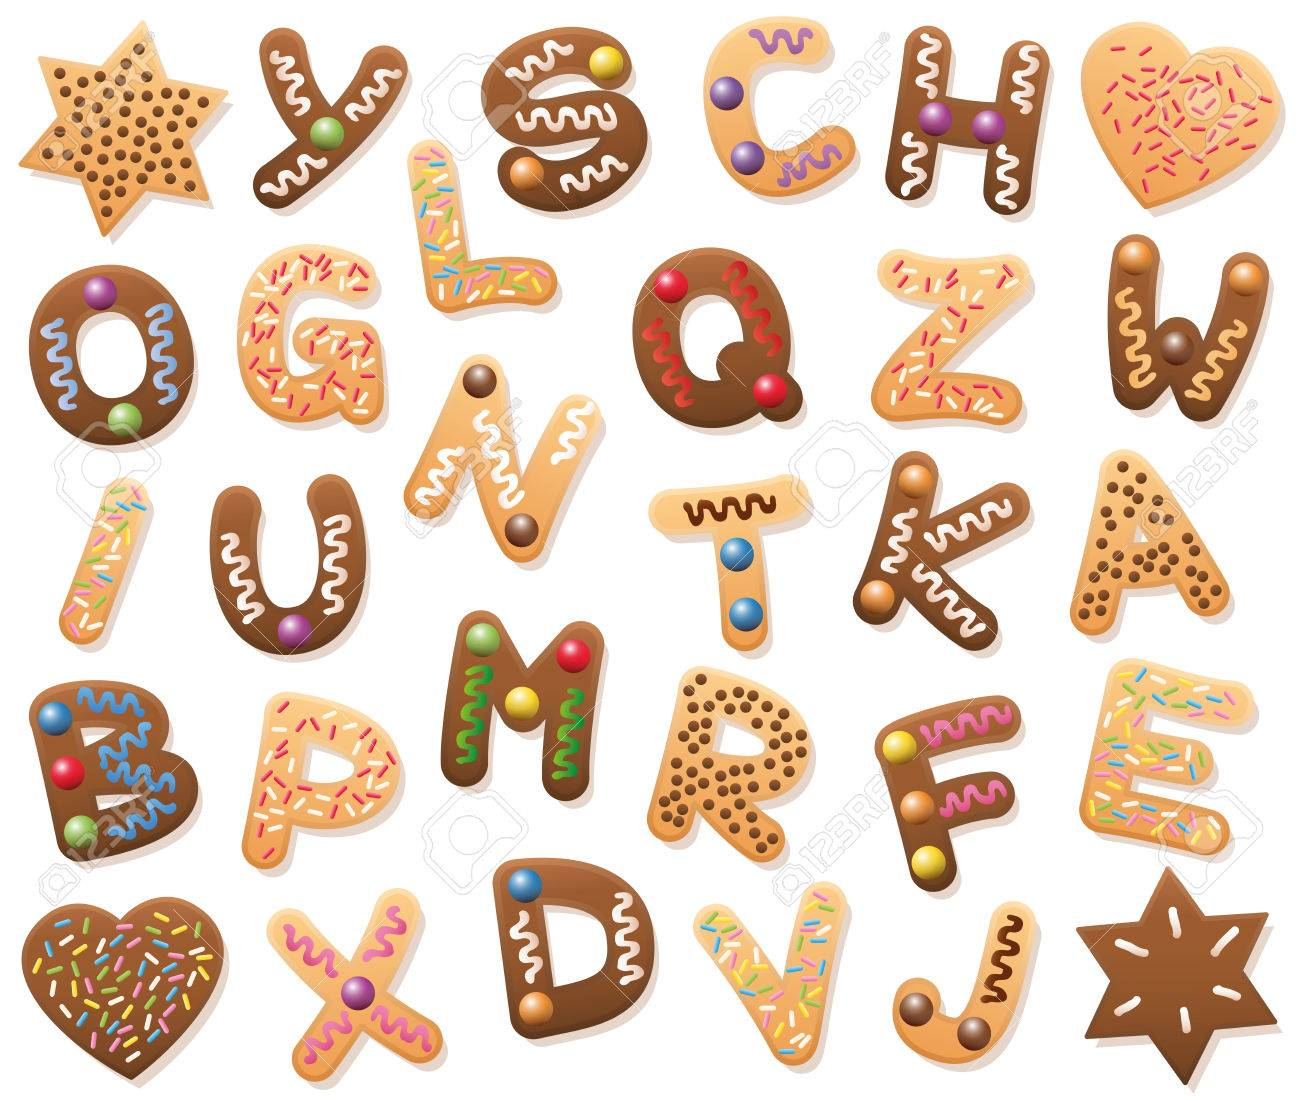 christmas cookies abc loosely arranged find all letters of the alphabet or bring